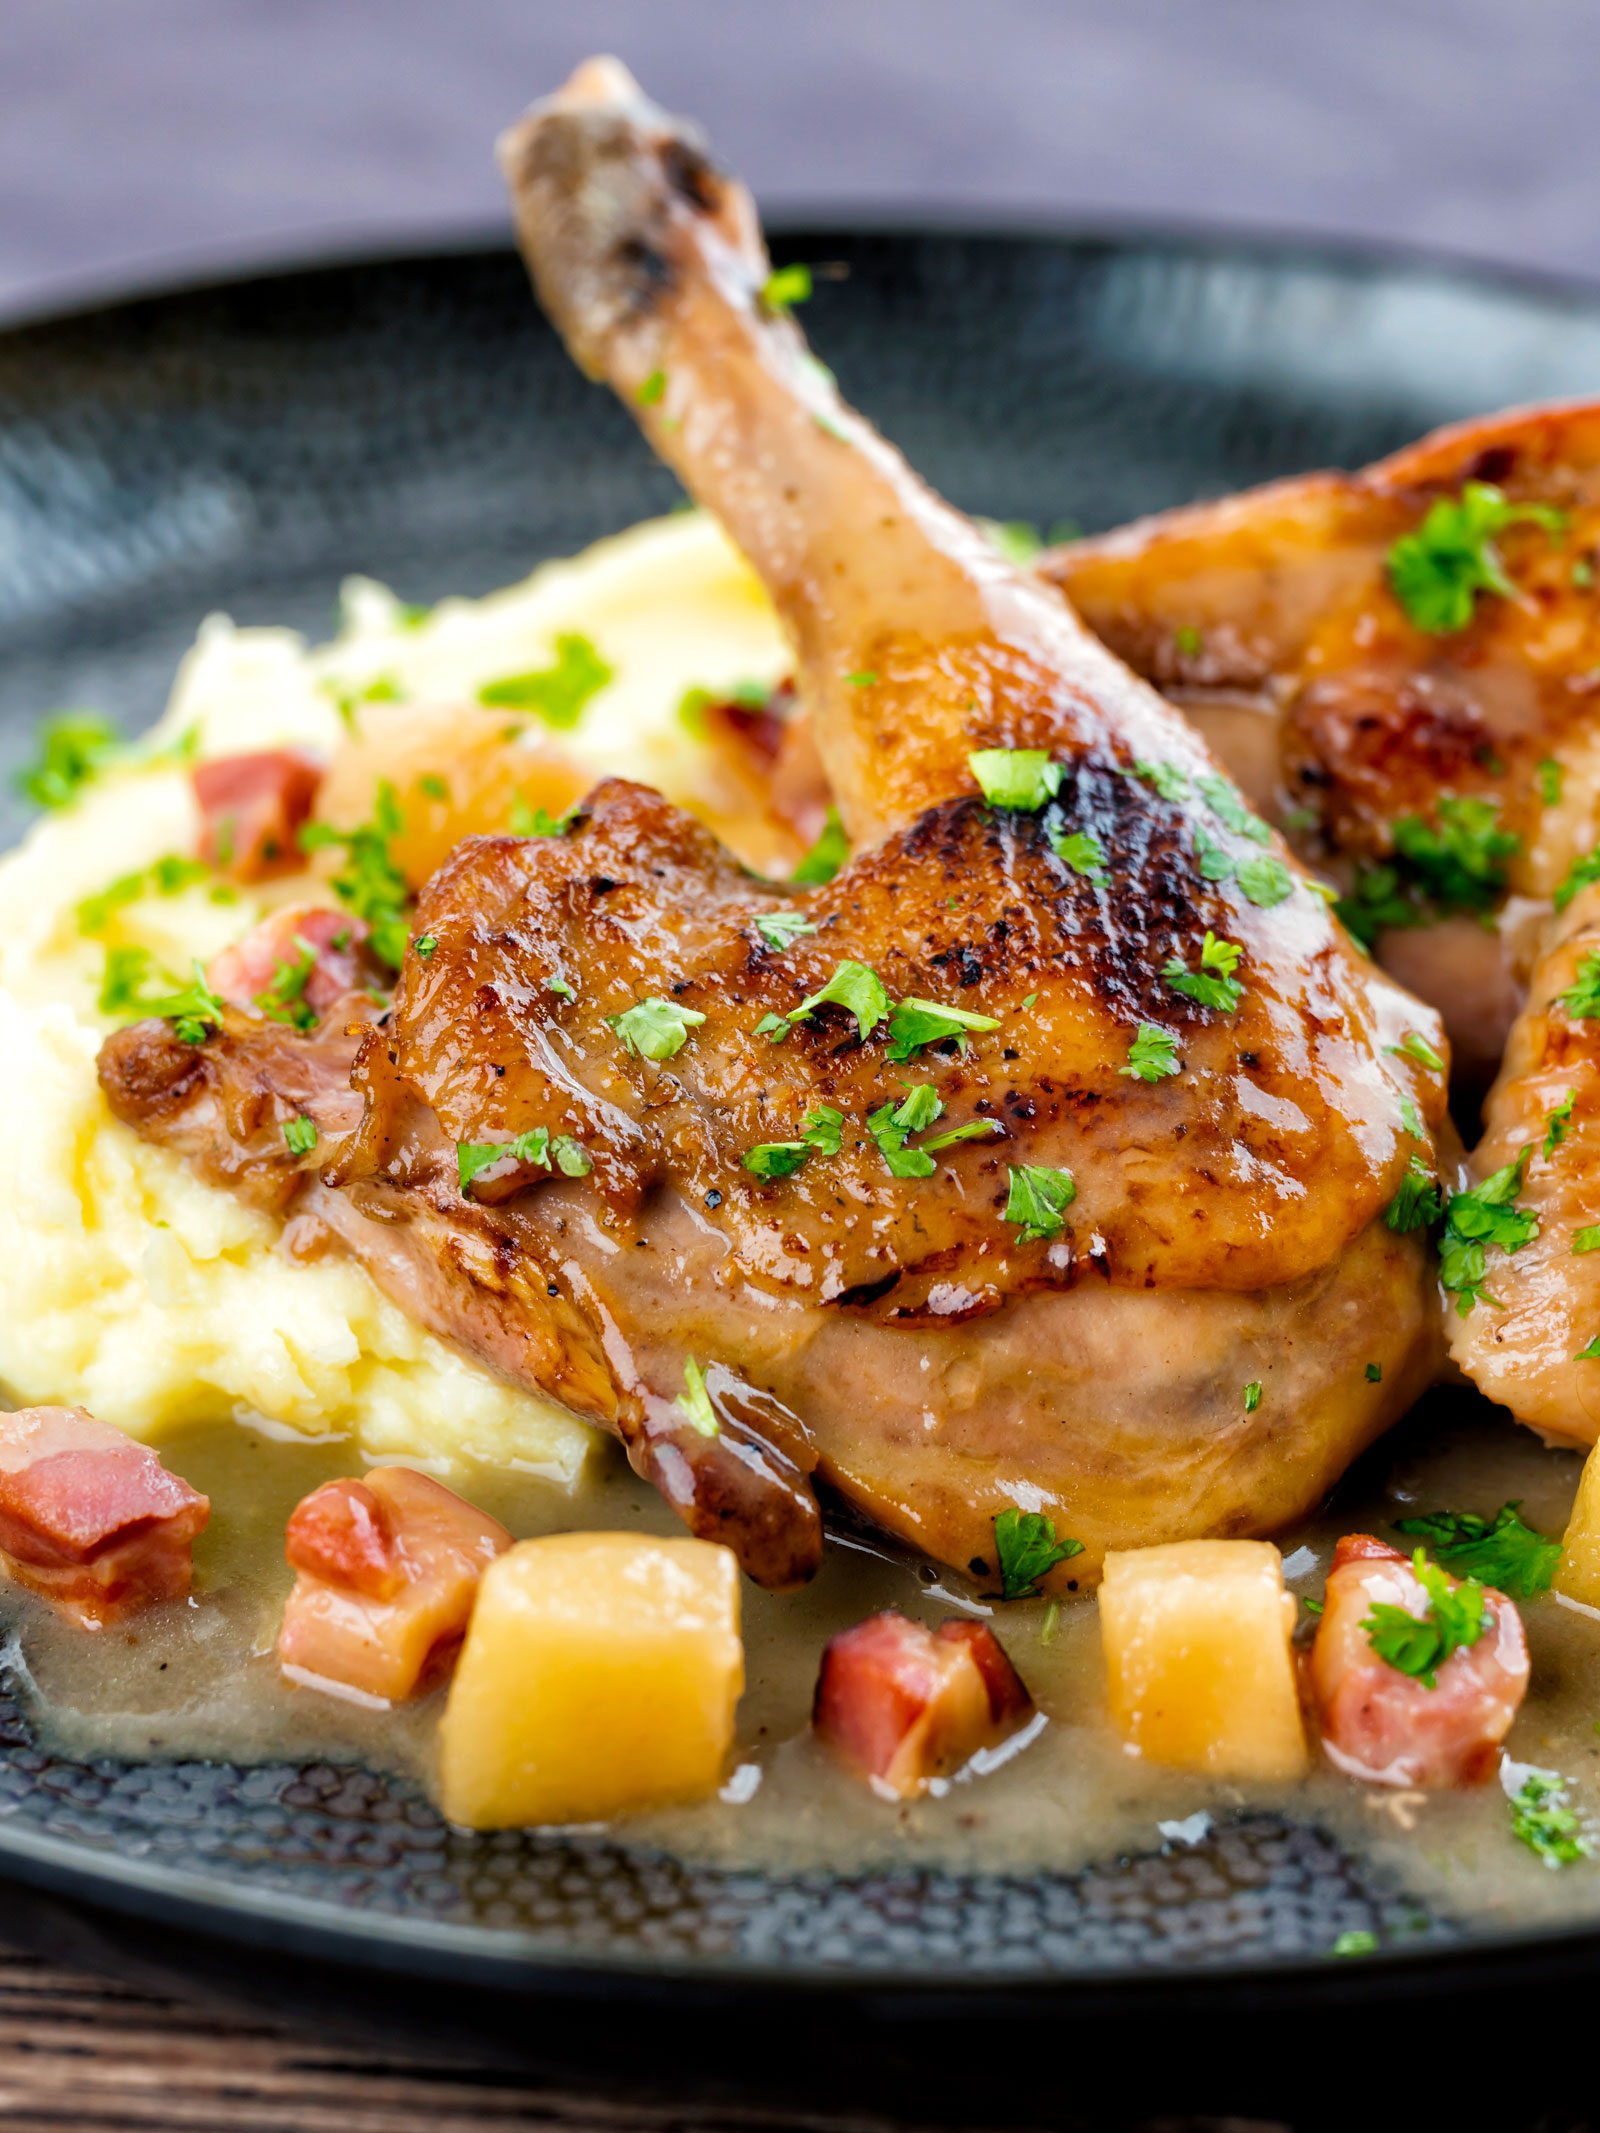 Pheasant casserole with a cider gravy, bacon & apples served with mashed potatoes.